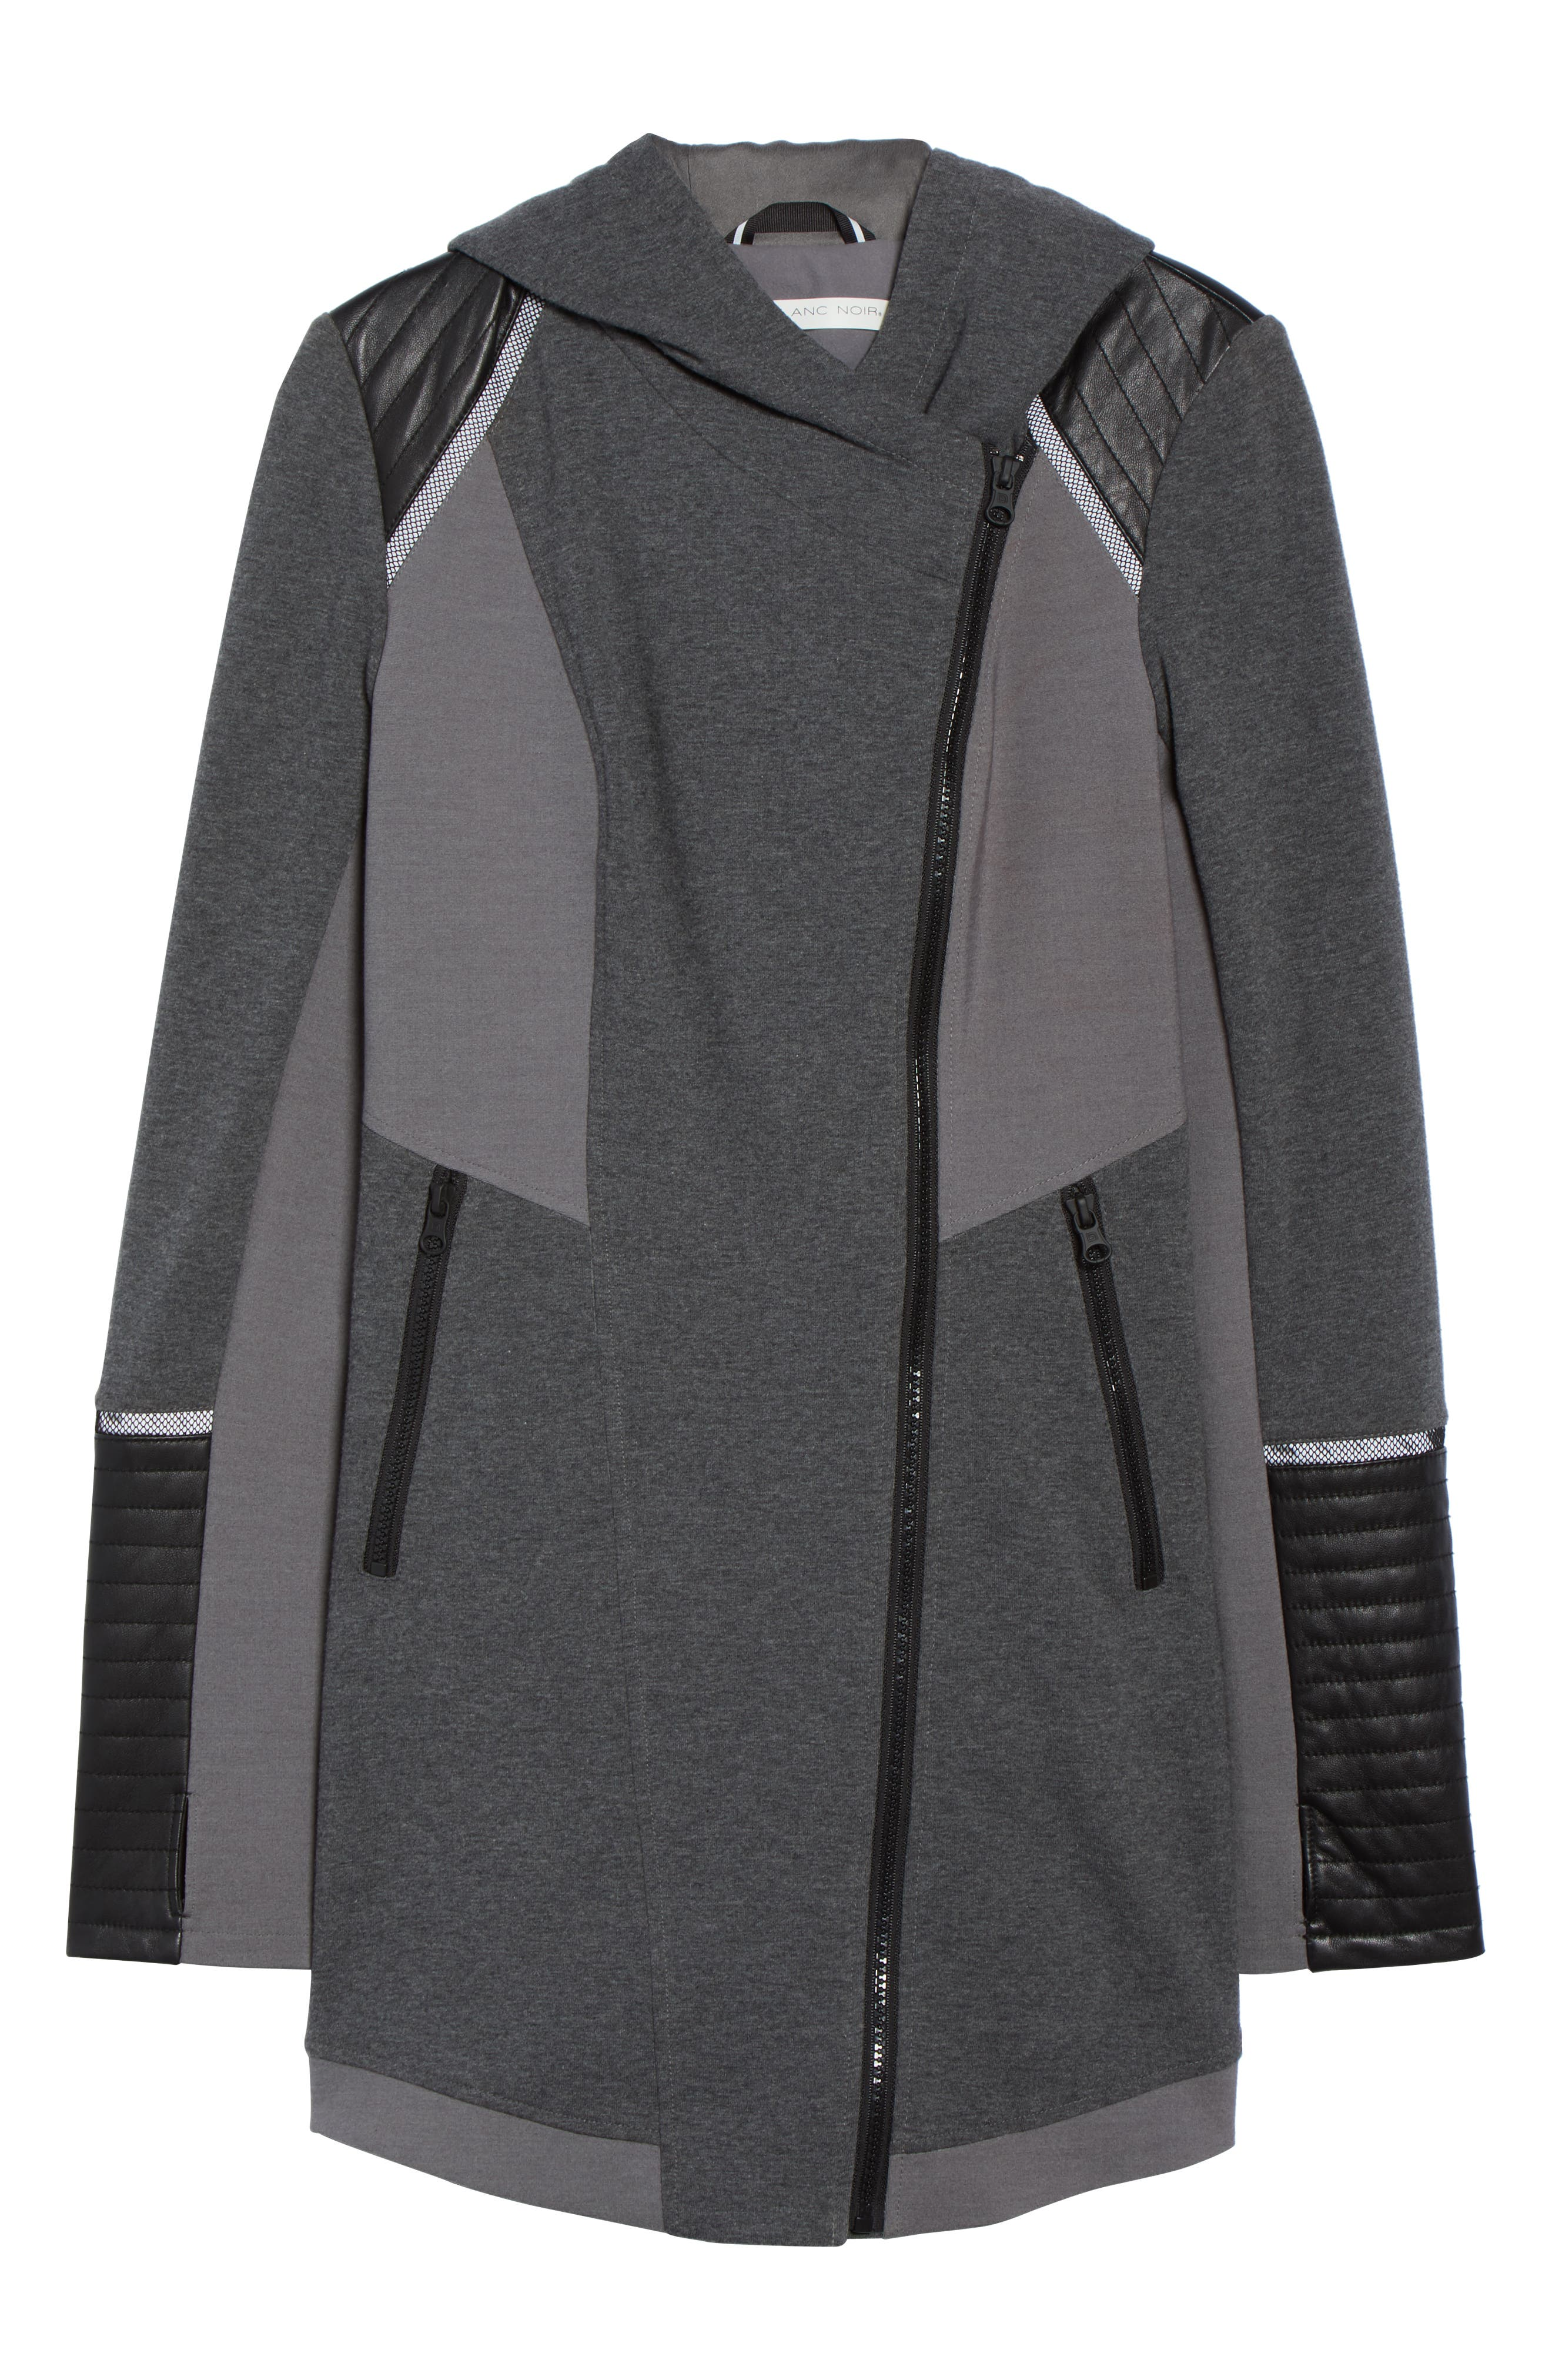 BLANC NOIR, Traveller Mesh Inset Jacket, Alternate thumbnail 7, color, CHARCOAL